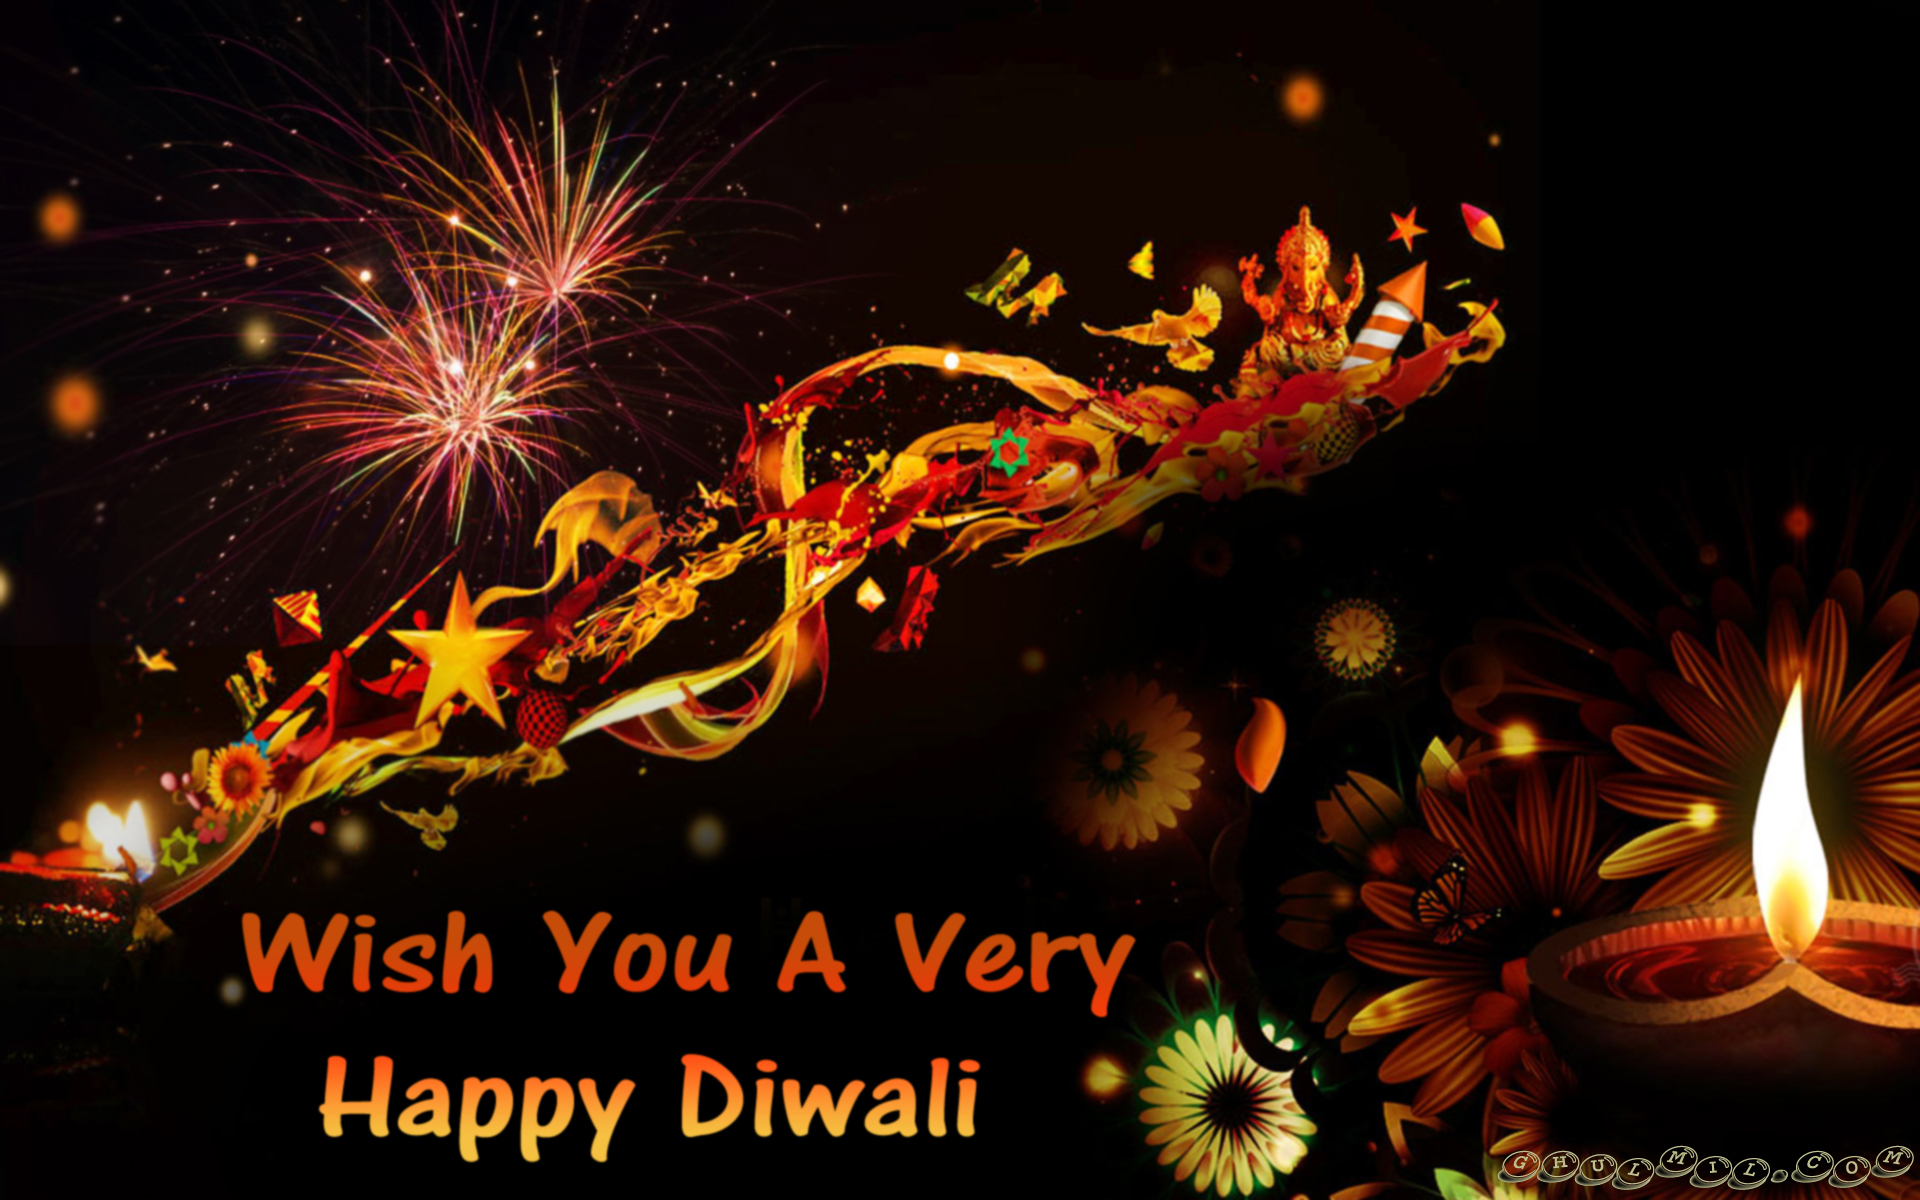 Diwali images of the festival wallpapers free download diwali images 2016 m4hsunfo